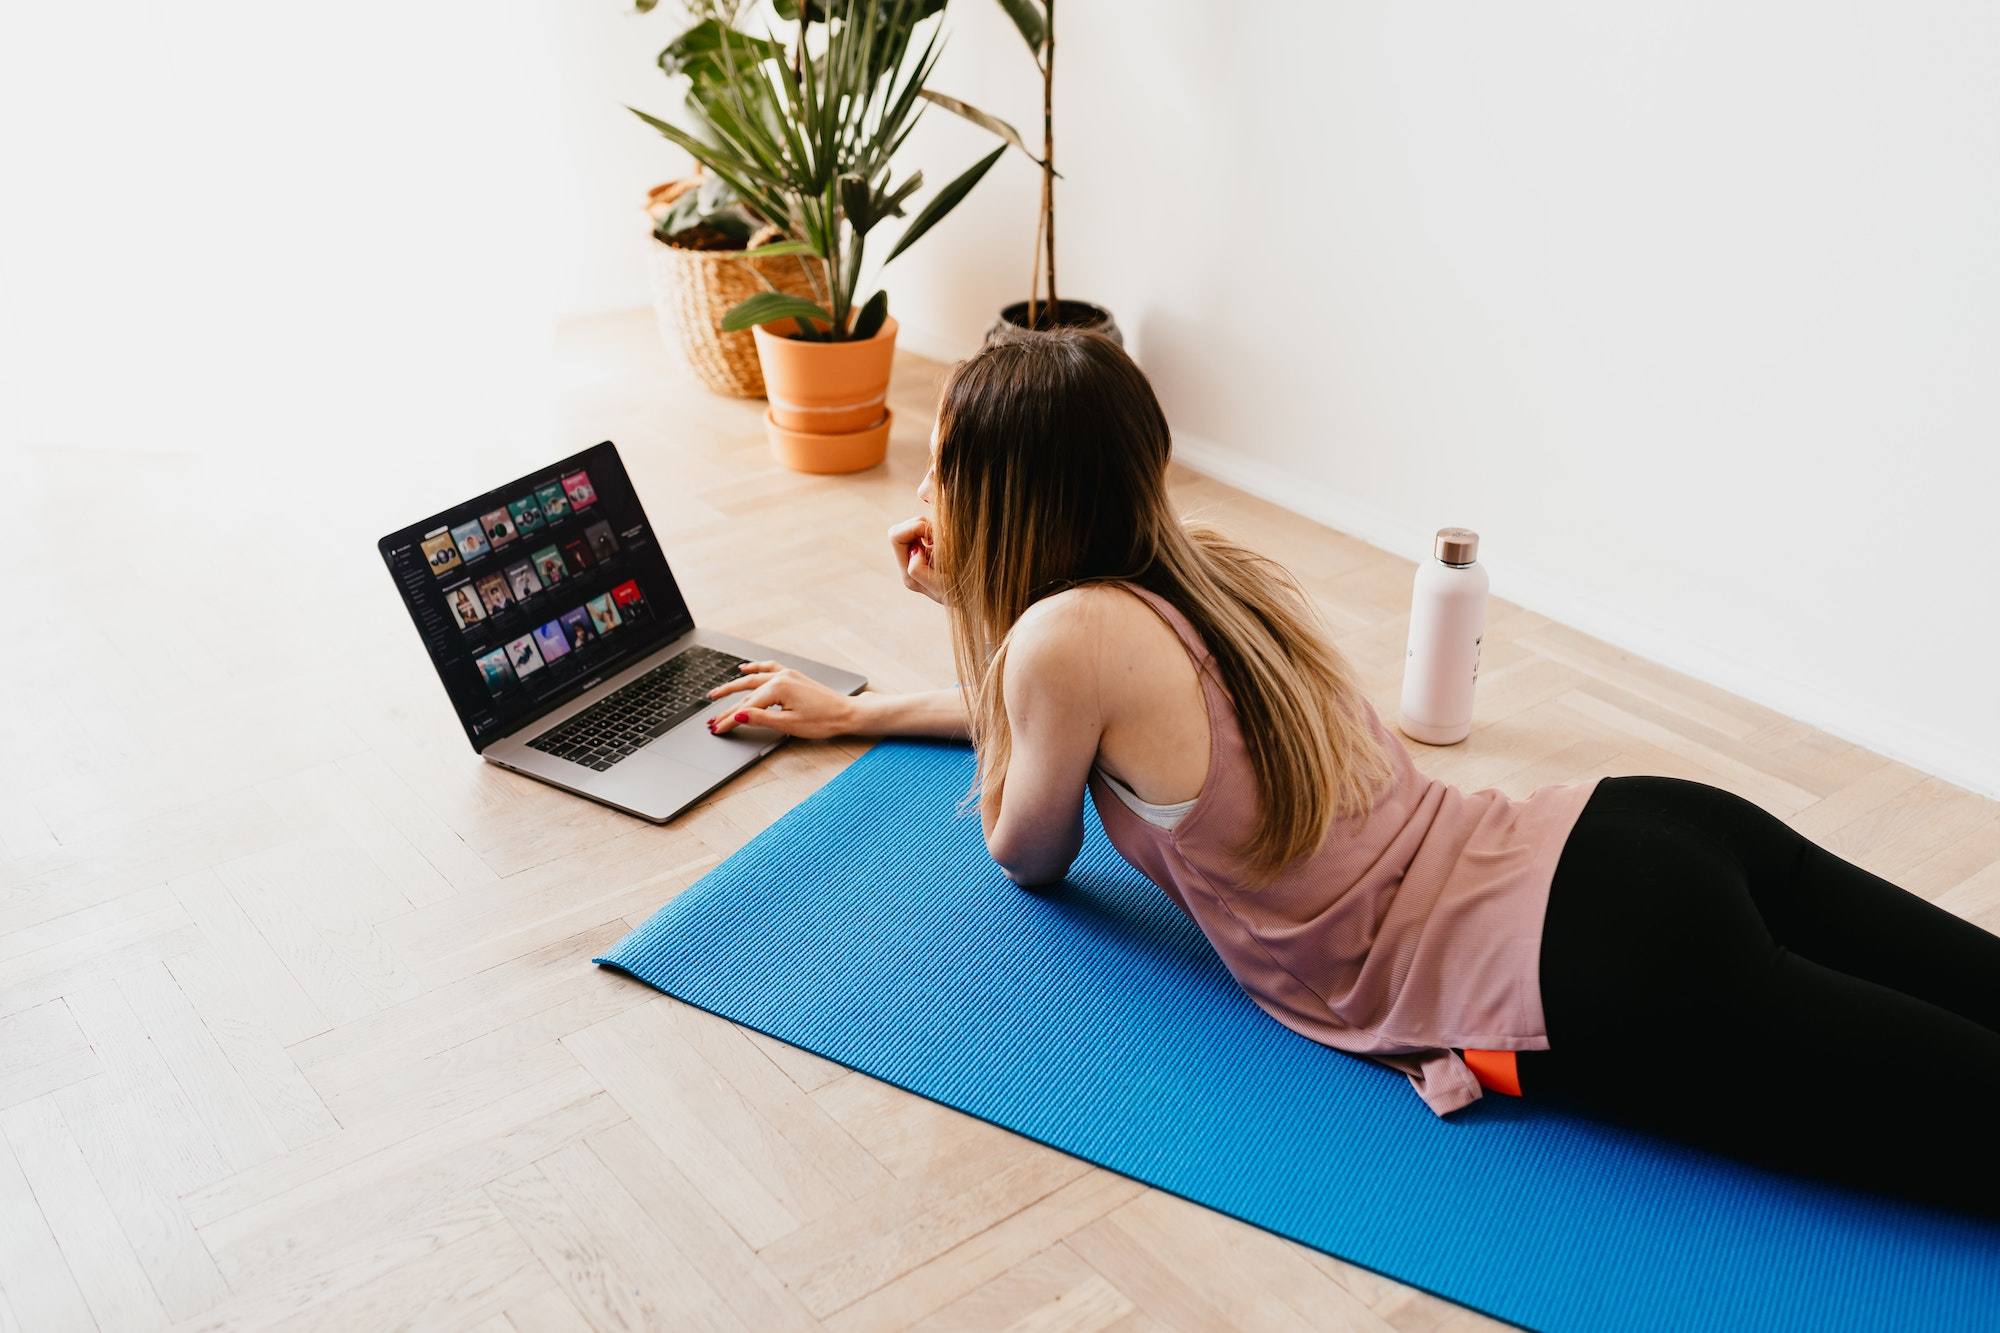 Yoga is always a good idea for a free, accessible workout that can be done from your living room